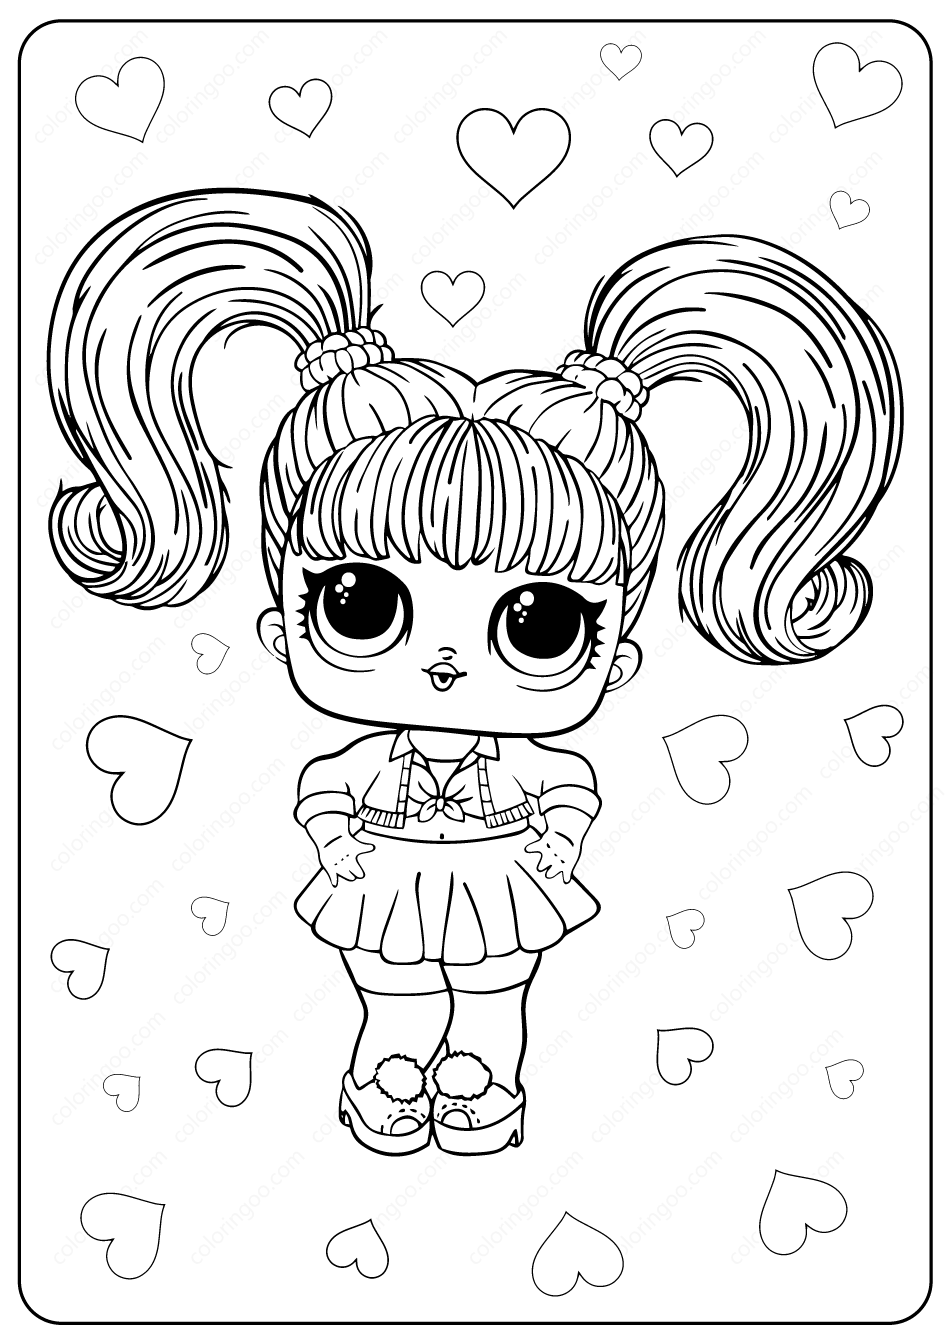 Printable Lol Surprise Oops Baby Coloring Pages Baby Coloring Pages Cartoon Coloring Pages Cute Coloring Pages